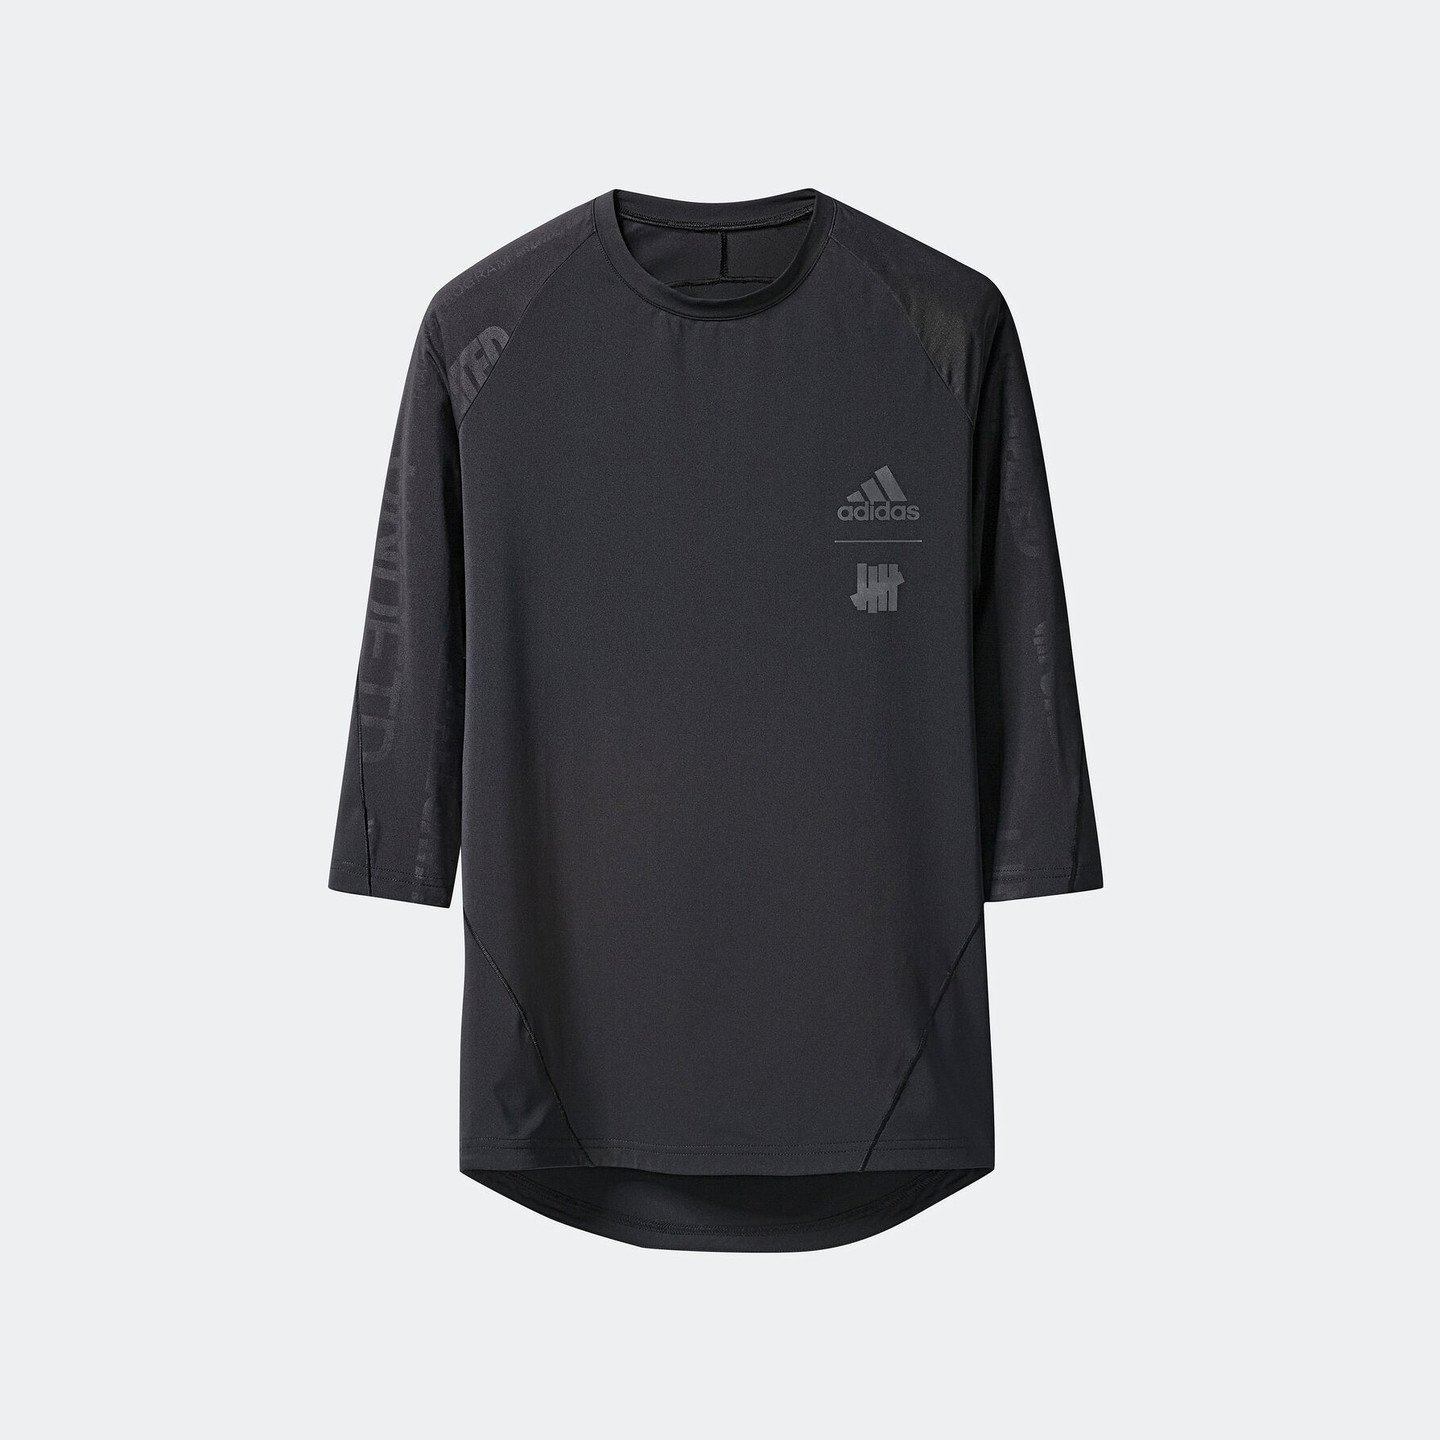 Adidas ASK Tech Tee 3/4 'UNDFTD' Core Black CZ5951